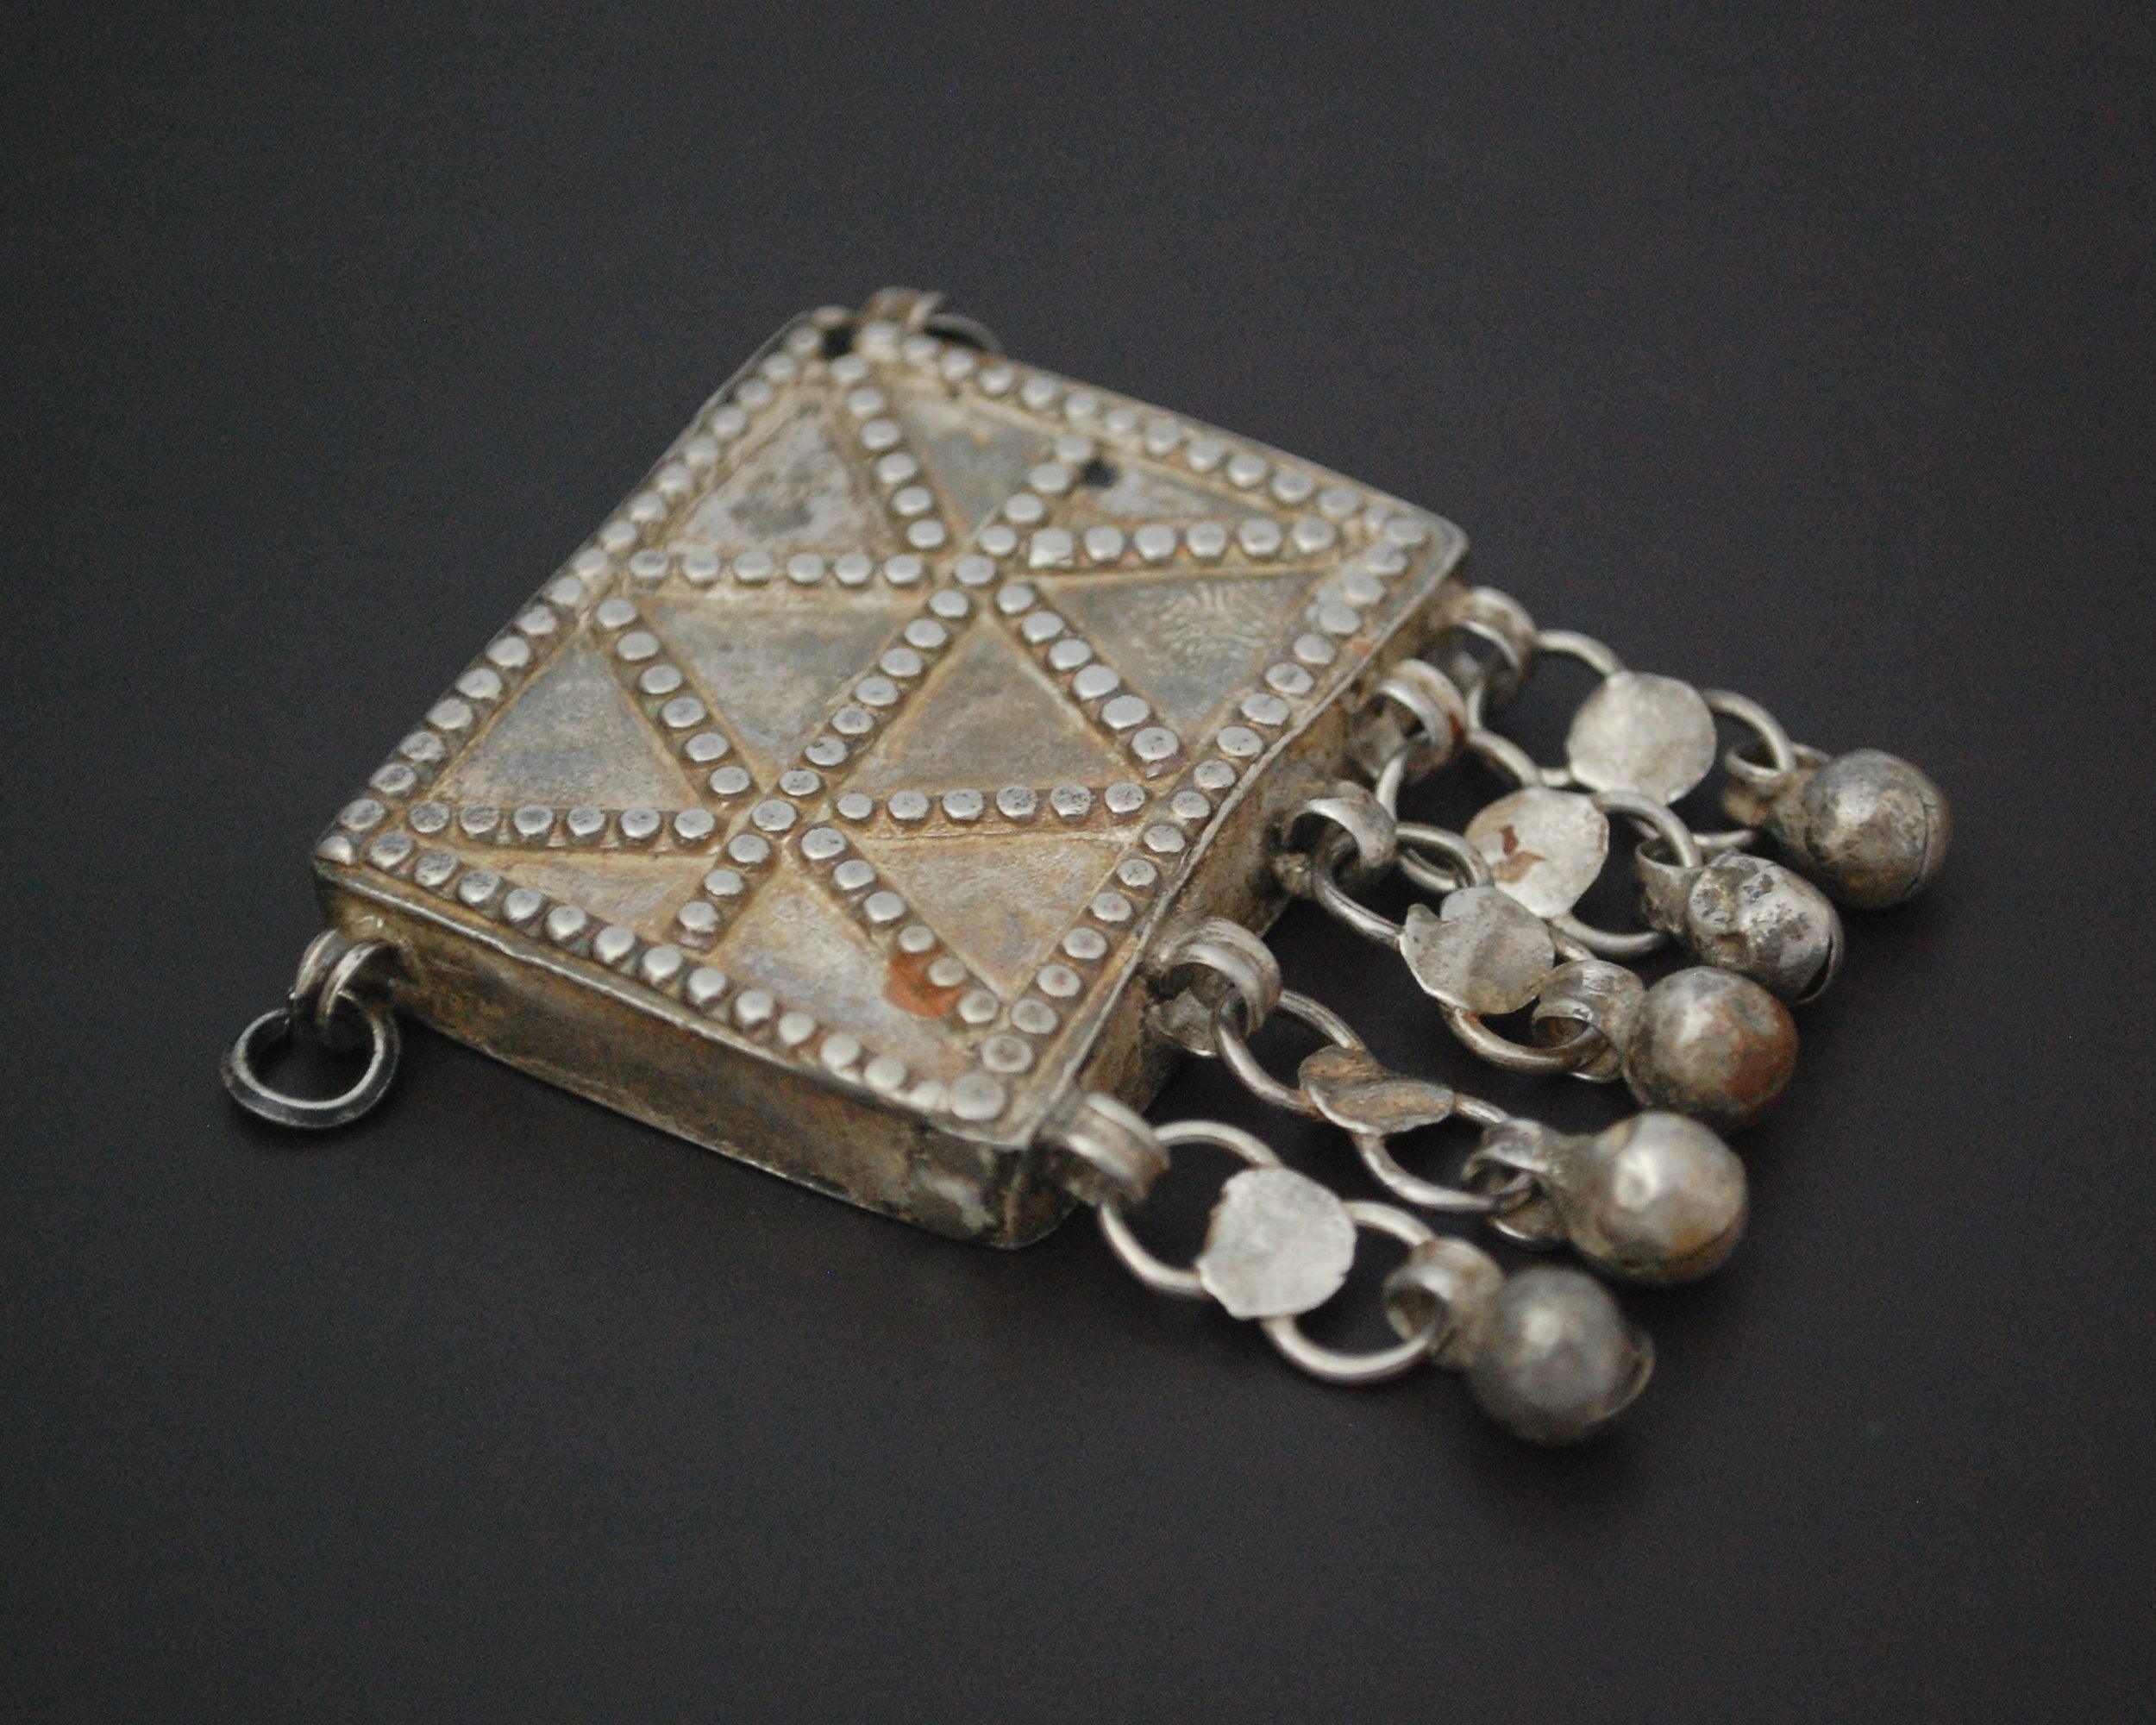 Bedouin Egyptian Zar Amulet Pendant Box with Bells